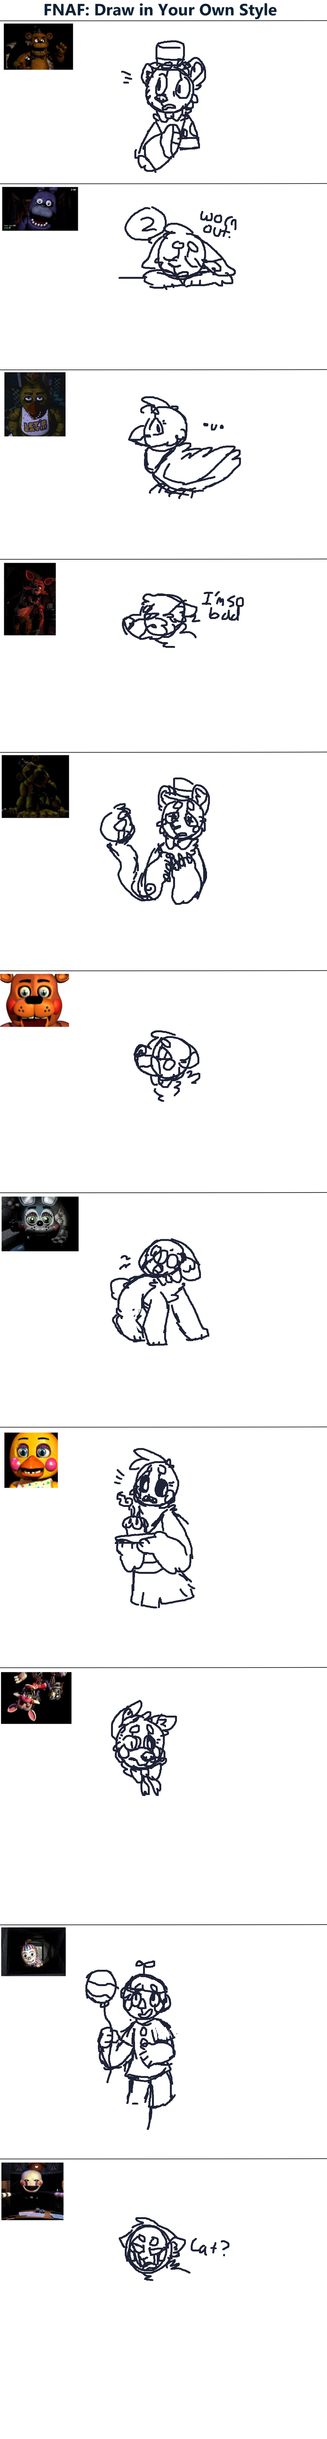 MEME // Fnaf Draw Your Own by Rainmask64